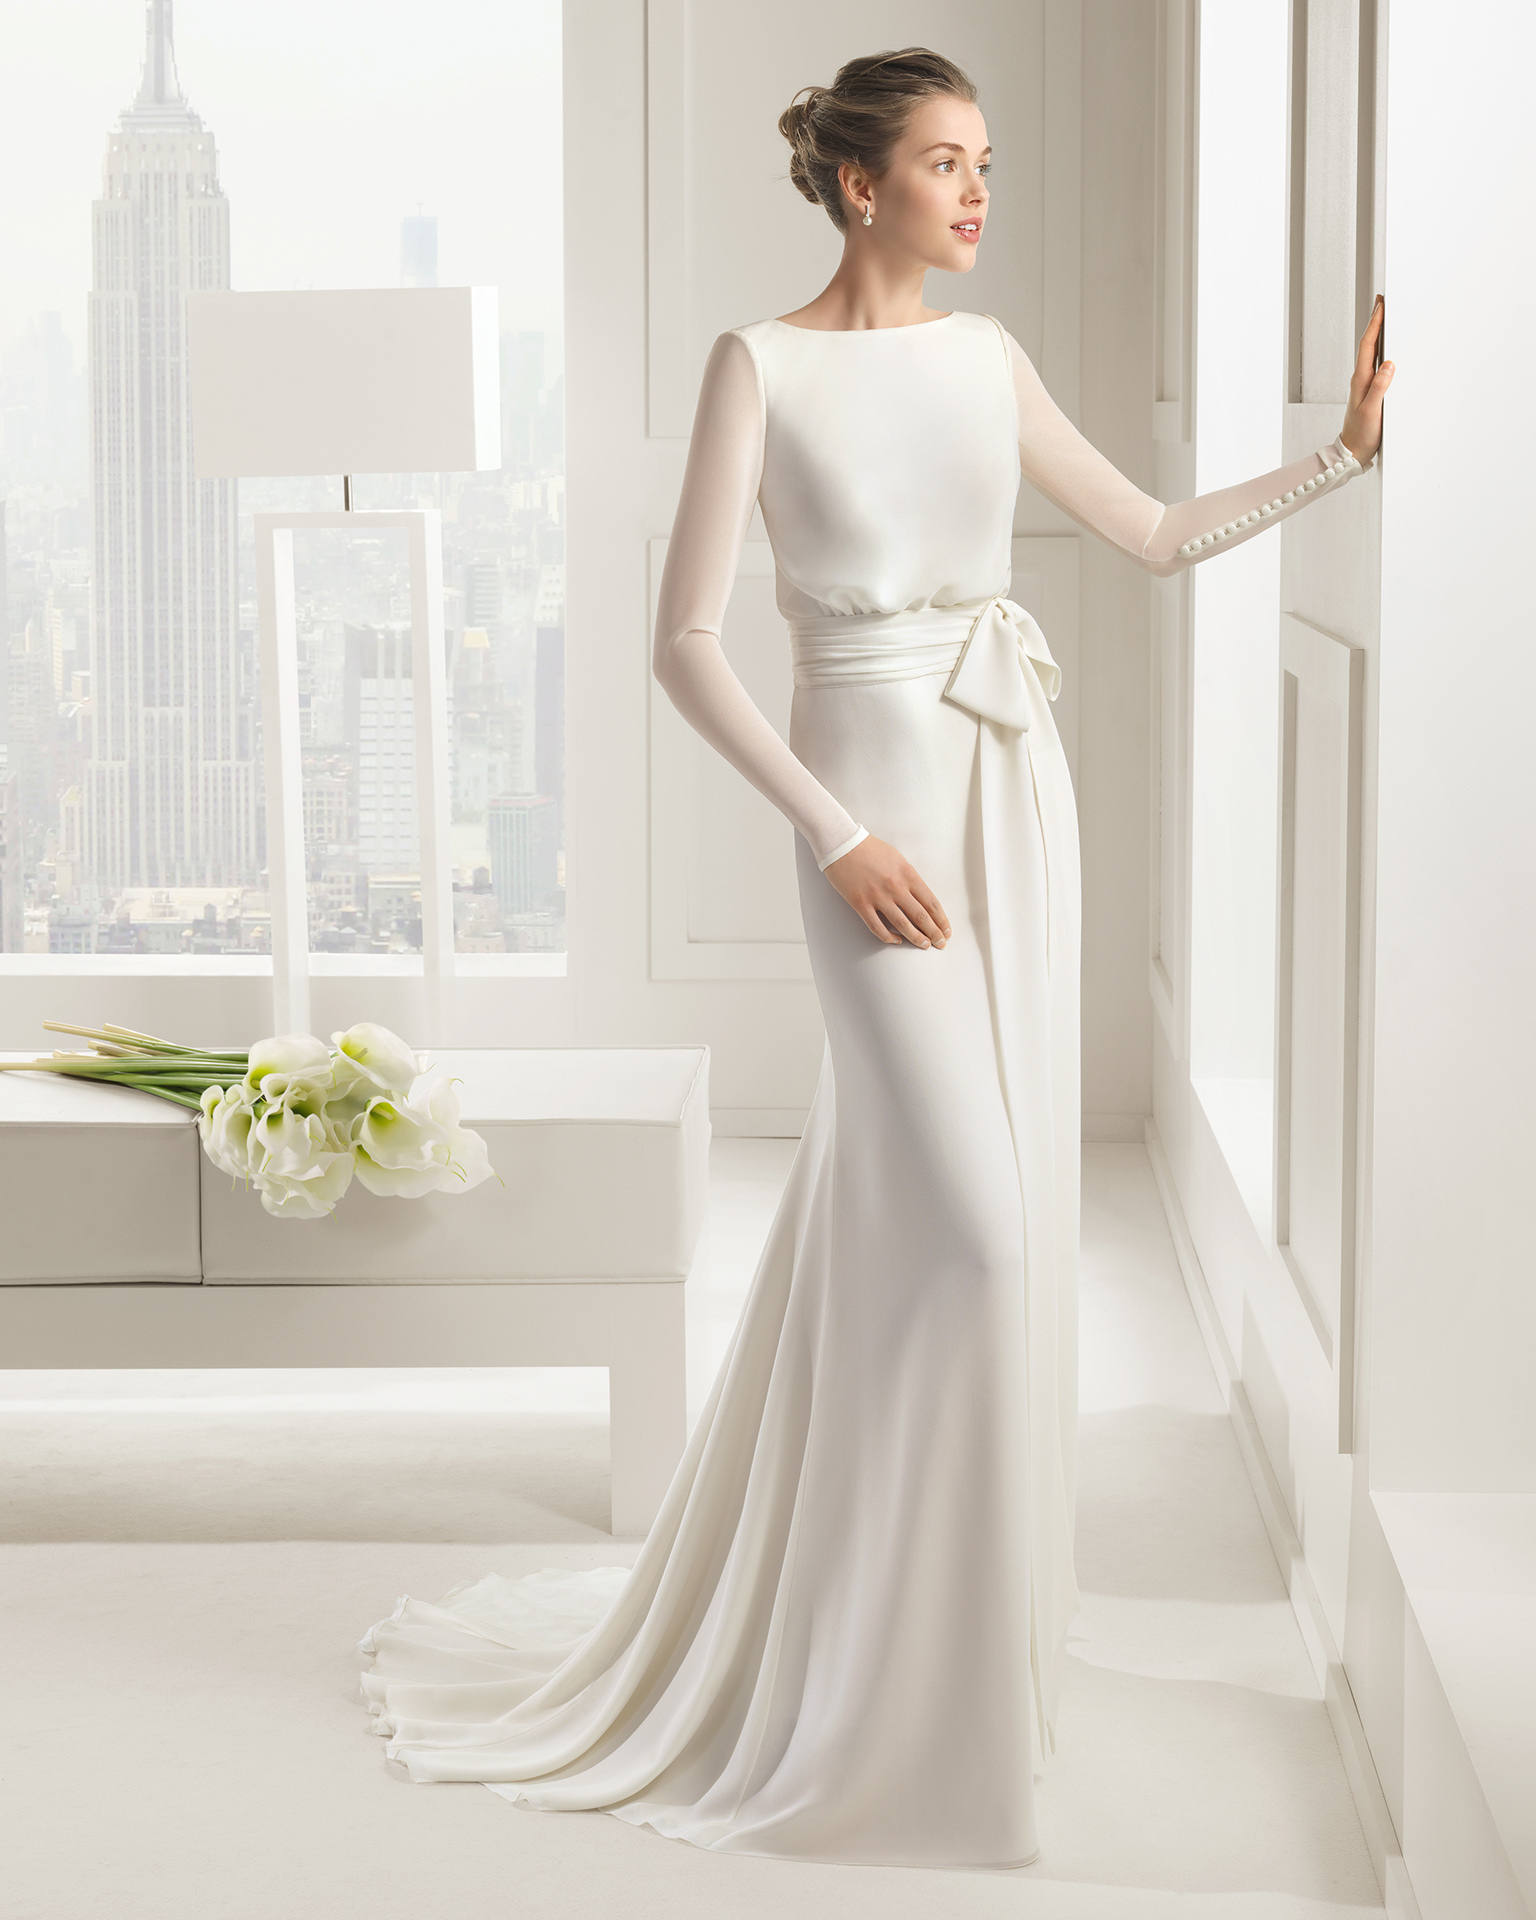 the latest 2015 bridal collection of rosa clara wedding dresses